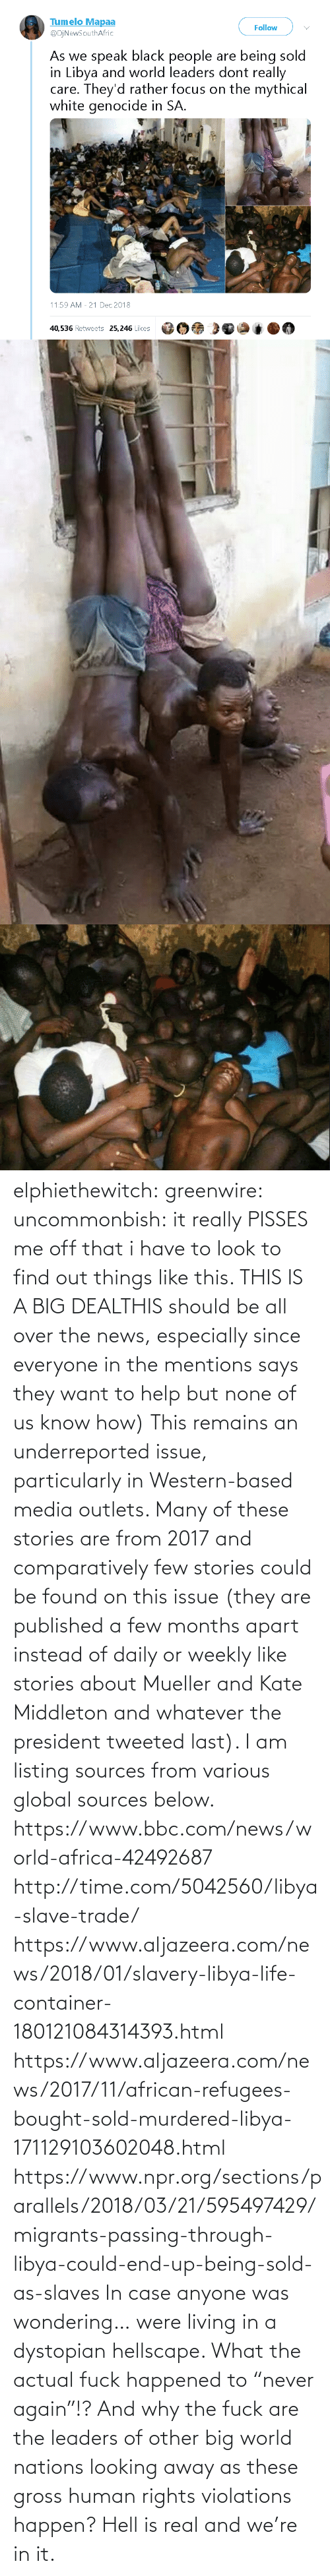 "To Look: elphiethewitch: greenwire:  uncommonbish:  it really PISSES me off that i have to look to find out things like this. THIS IS A BIG DEALTHIS should be all over the news, especially since everyone in the mentions says they want to help but none of us know how)  This remains an underreported issue, particularly in Western-based media outlets. Many of these stories are from 2017 and comparatively few stories could be found on this issue (they are published a few months apart instead of daily or weekly like stories about Mueller and Kate Middleton and whatever the president tweeted last). I am listing sources from various global sources below.  https://www.bbc.com/news/world-africa-42492687 http://time.com/5042560/libya-slave-trade/ https://www.aljazeera.com/news/2018/01/slavery-libya-life-container-180121084314393.html https://www.aljazeera.com/news/2017/11/african-refugees-bought-sold-murdered-libya-171129103602048.html https://www.npr.org/sections/parallels/2018/03/21/595497429/migrants-passing-through-libya-could-end-up-being-sold-as-slaves   In case anyone was wondering… were living in a dystopian hellscape.  What the actual fuck happened to ""never again""!? And why the fuck are the leaders of other big world nations looking away as these gross human rights violations happen?  Hell is real and we're in it."